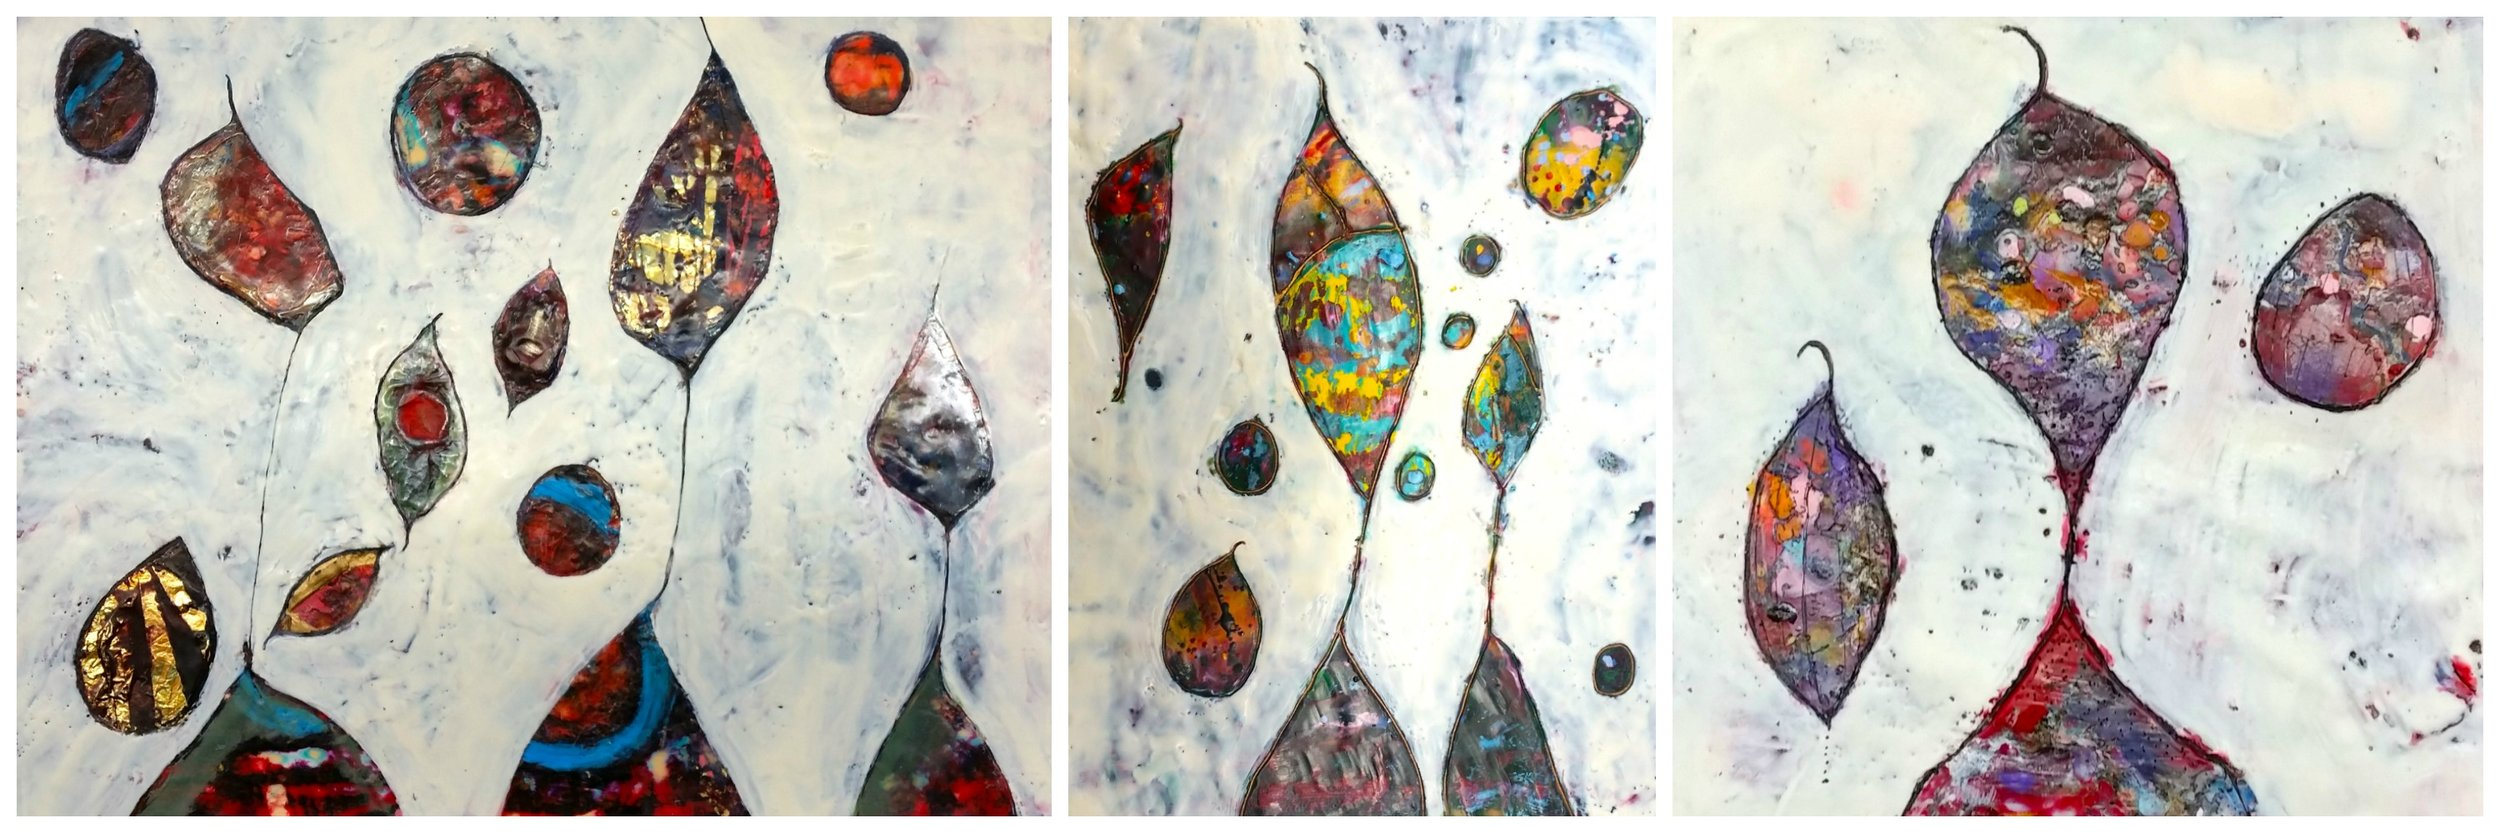 Three paintings from the  Rising Up!  Series (I, II, & III) by Bethany Handfield